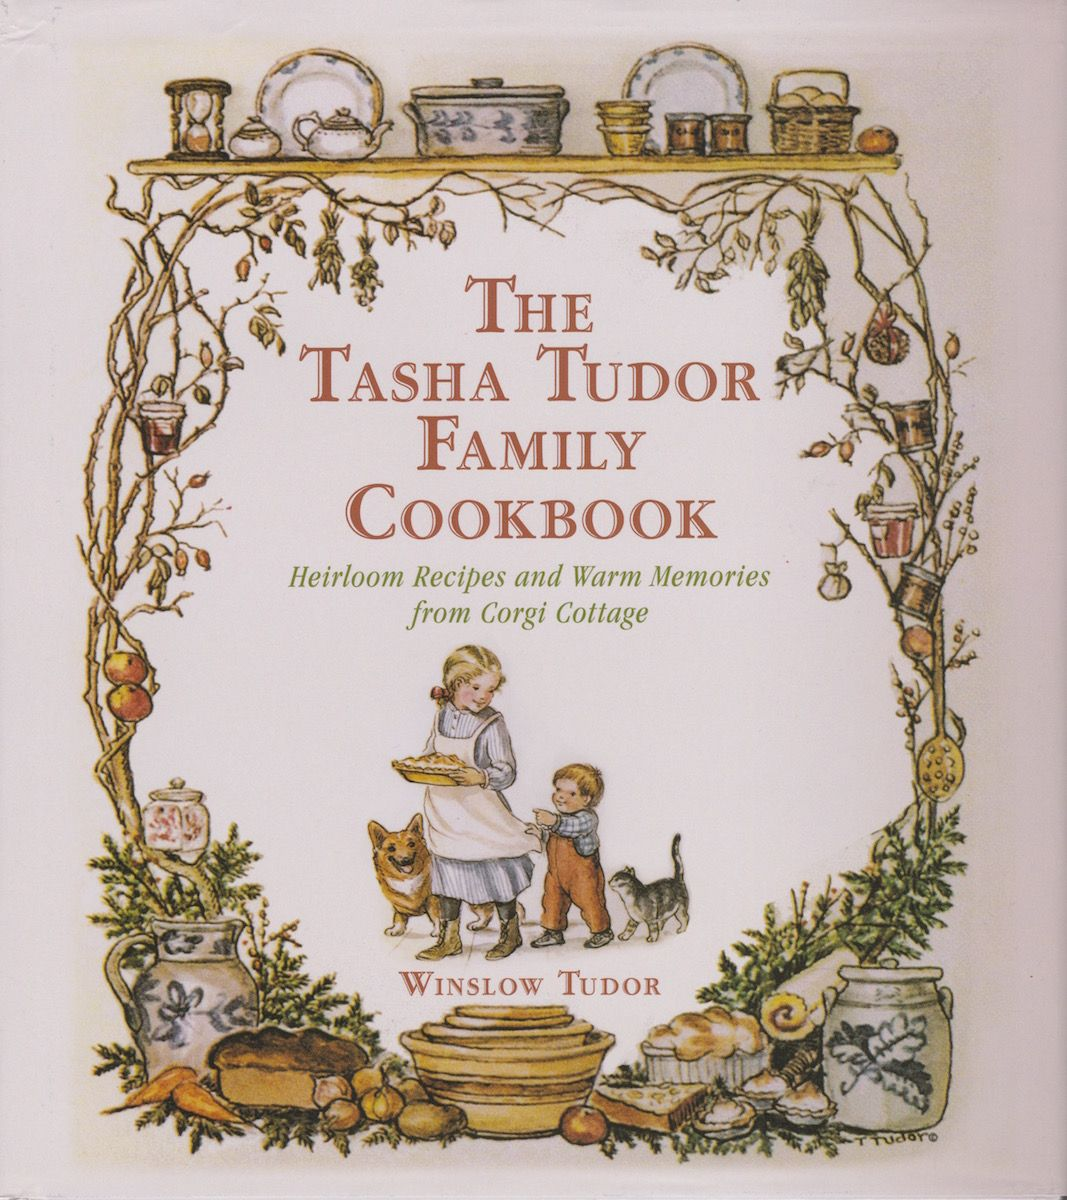 Family Cookbook Cover ~ Timeline tasha tudor and family results from #56